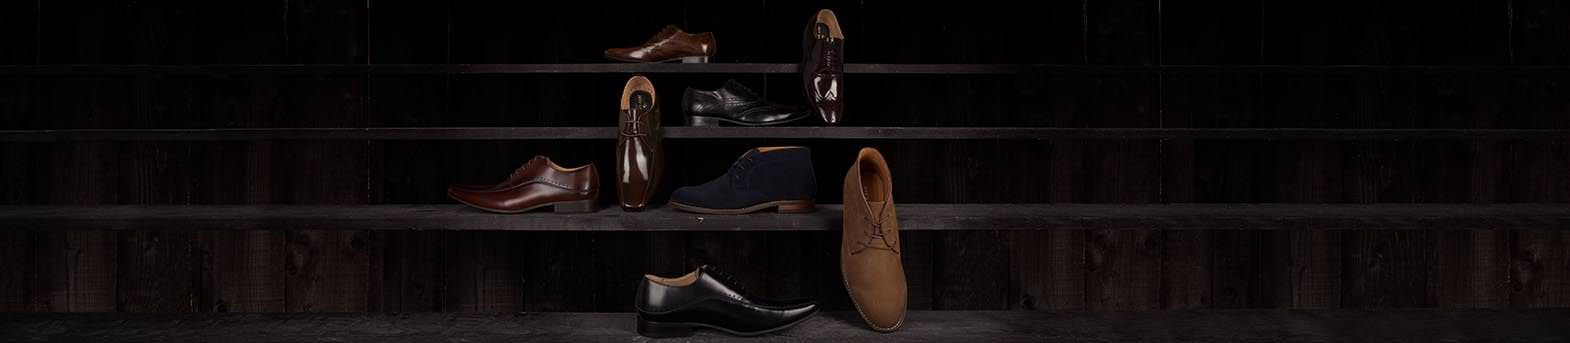 Day 8 - 25% Off Shoes